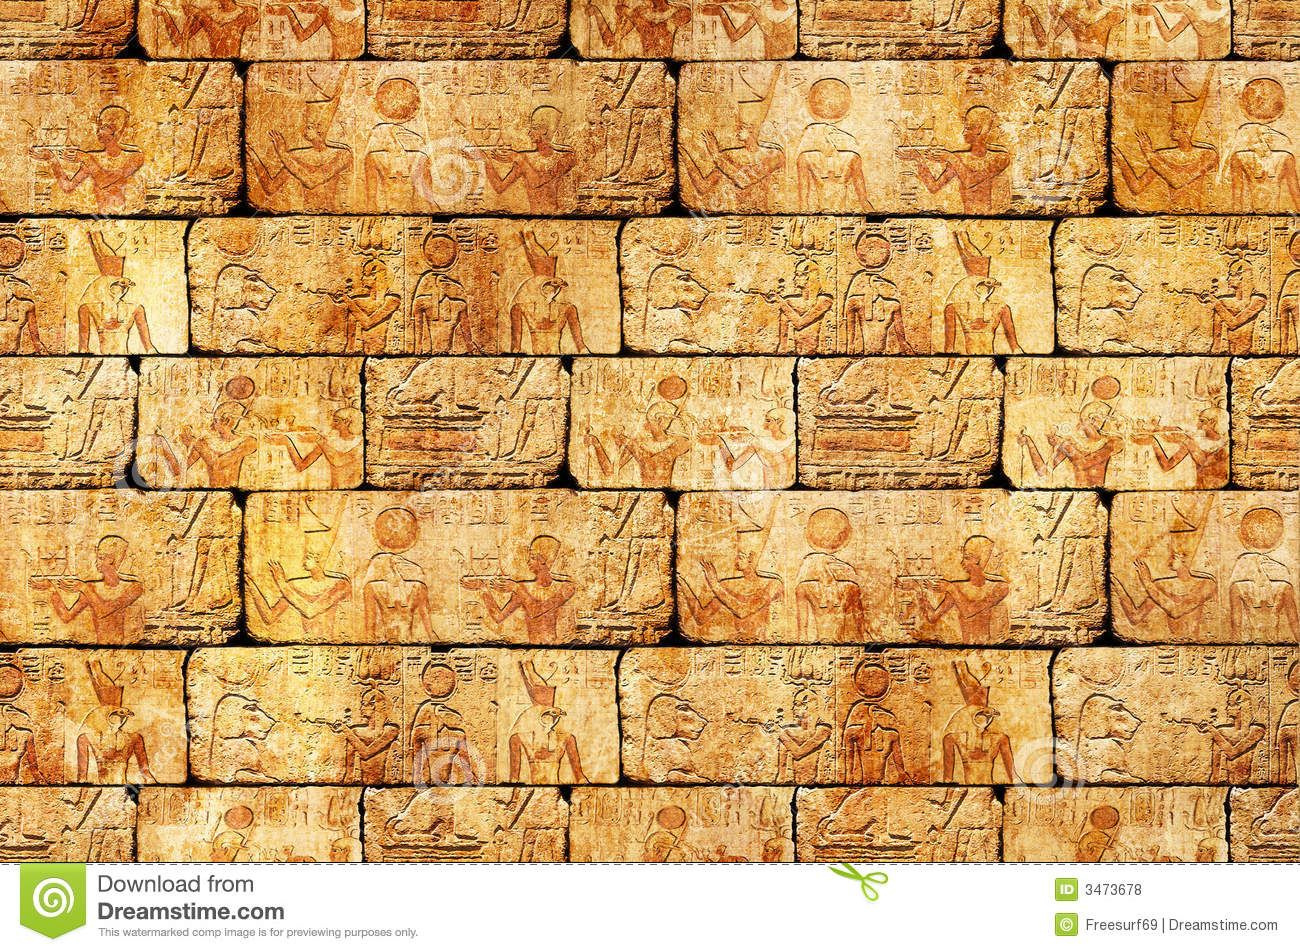 egyptian sandstone brick wall - Google Search | Egyptian ...